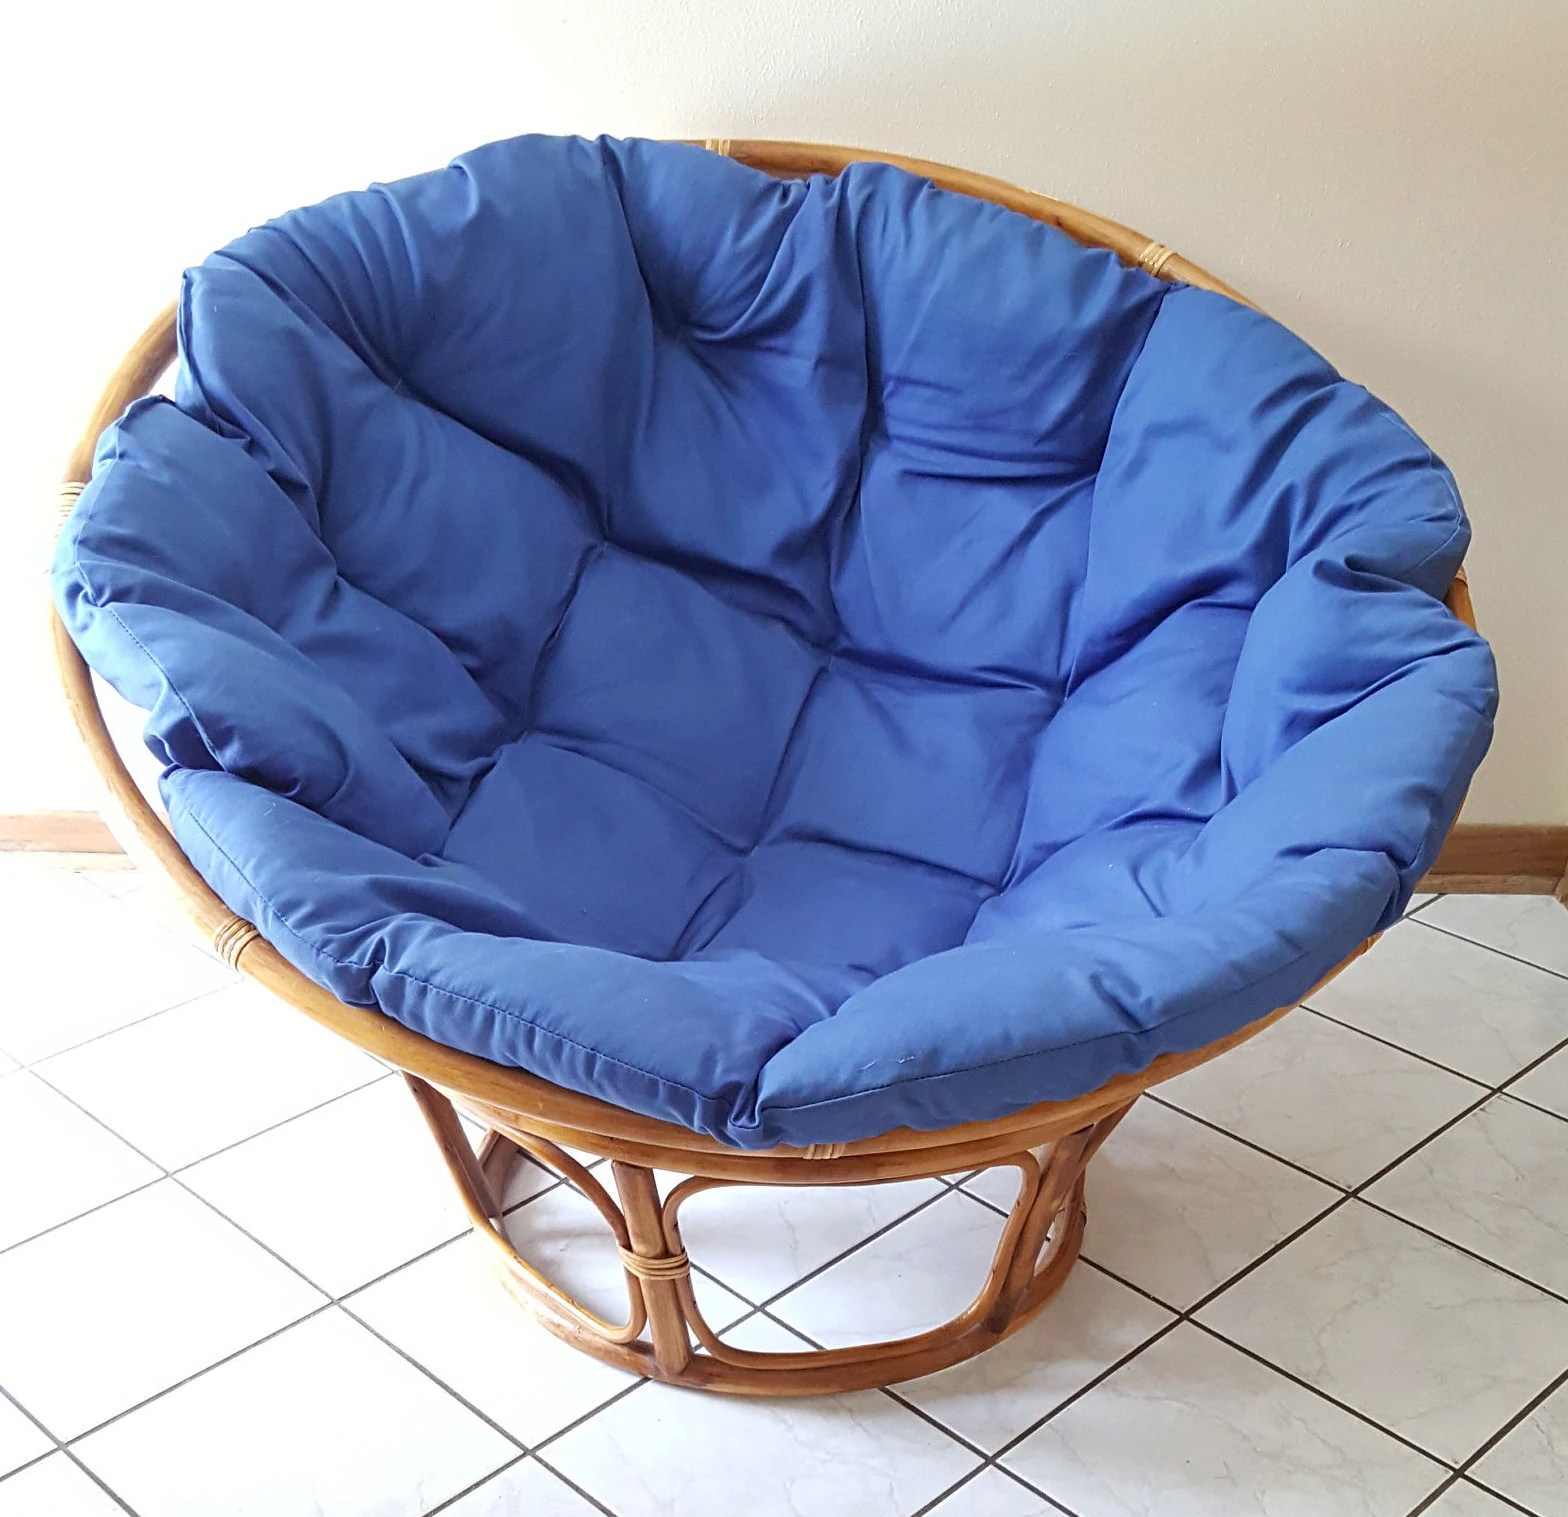 papasan chair cover etsy cosco folding chairs and blue cushion note buyer arranges own image 0